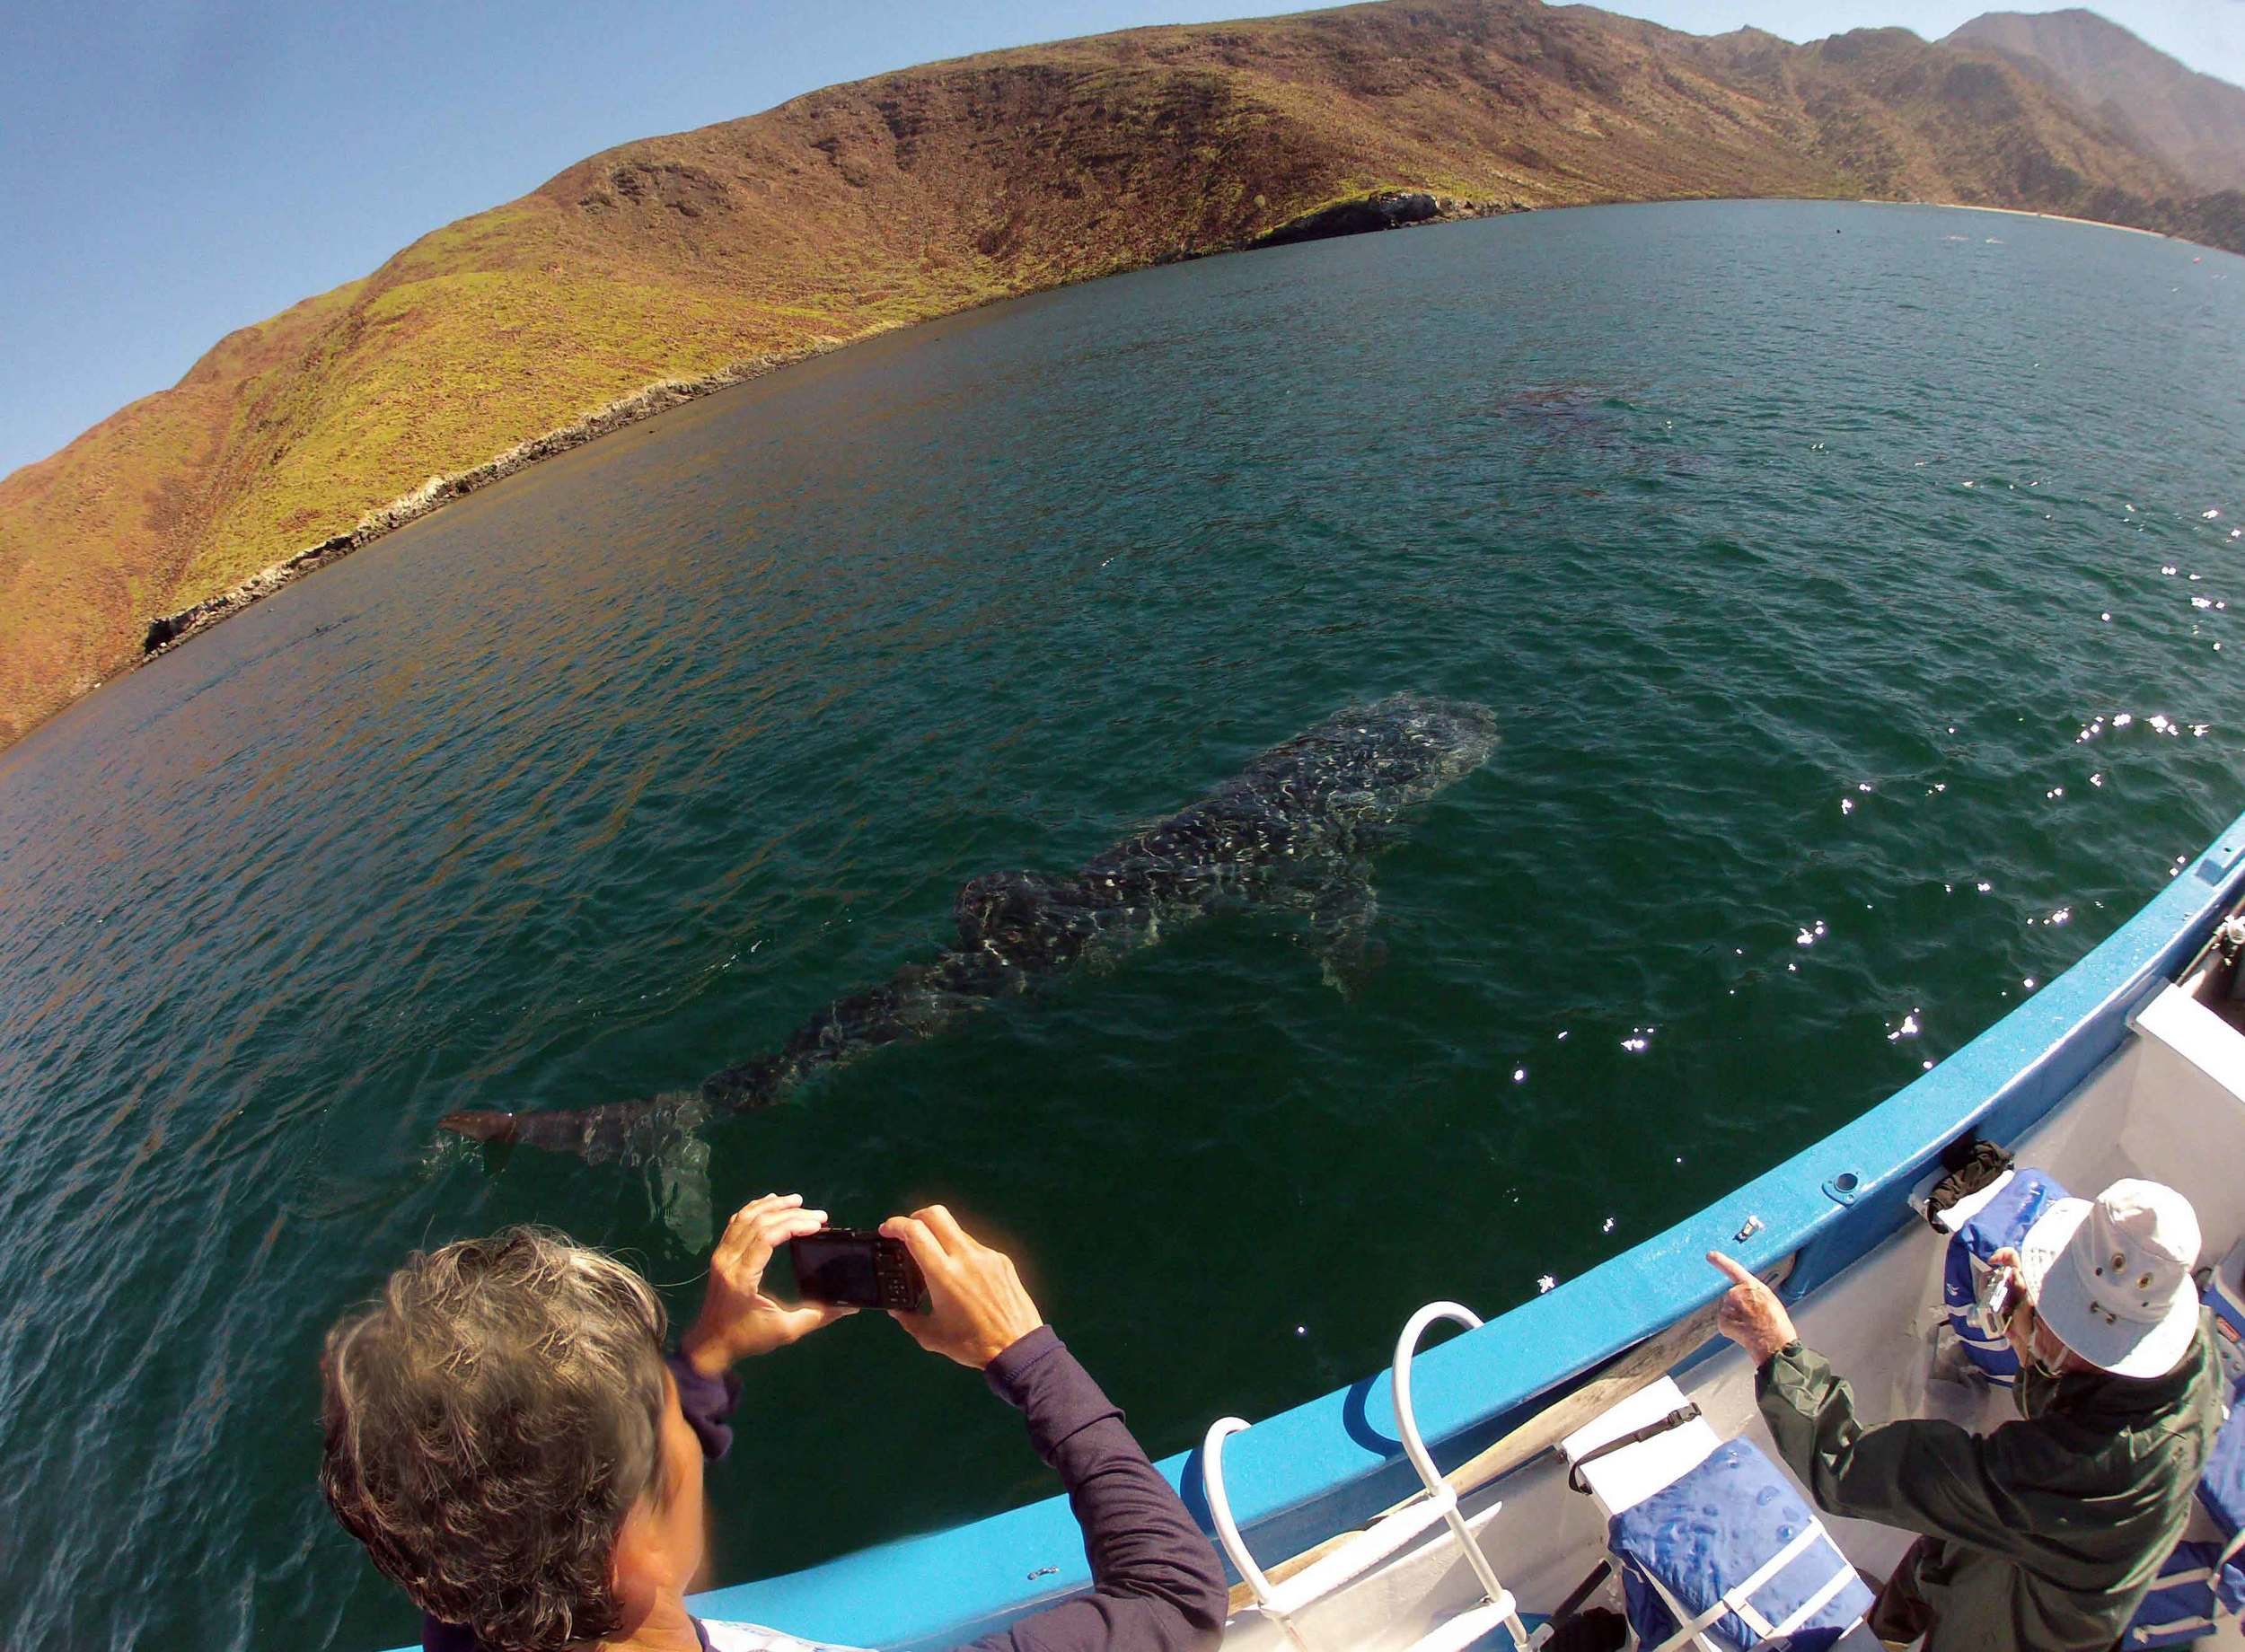 Docile whale sharks glide past a tour boat in the bay of Bahia de Los Angeles, Baja Mexico.                                                                                                                               ©Joanne DiBona